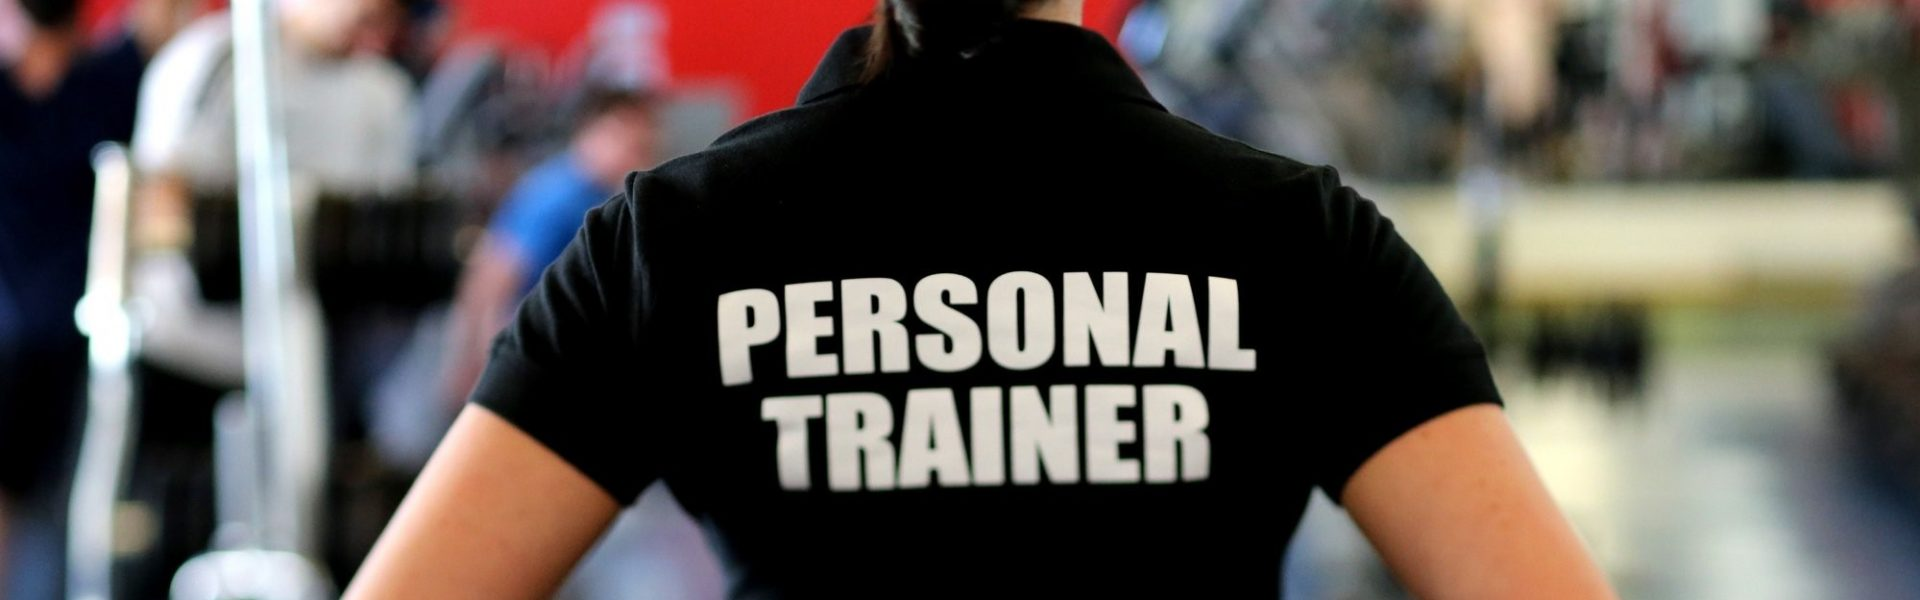 insurance, personal trainer in t-shirt in a gym